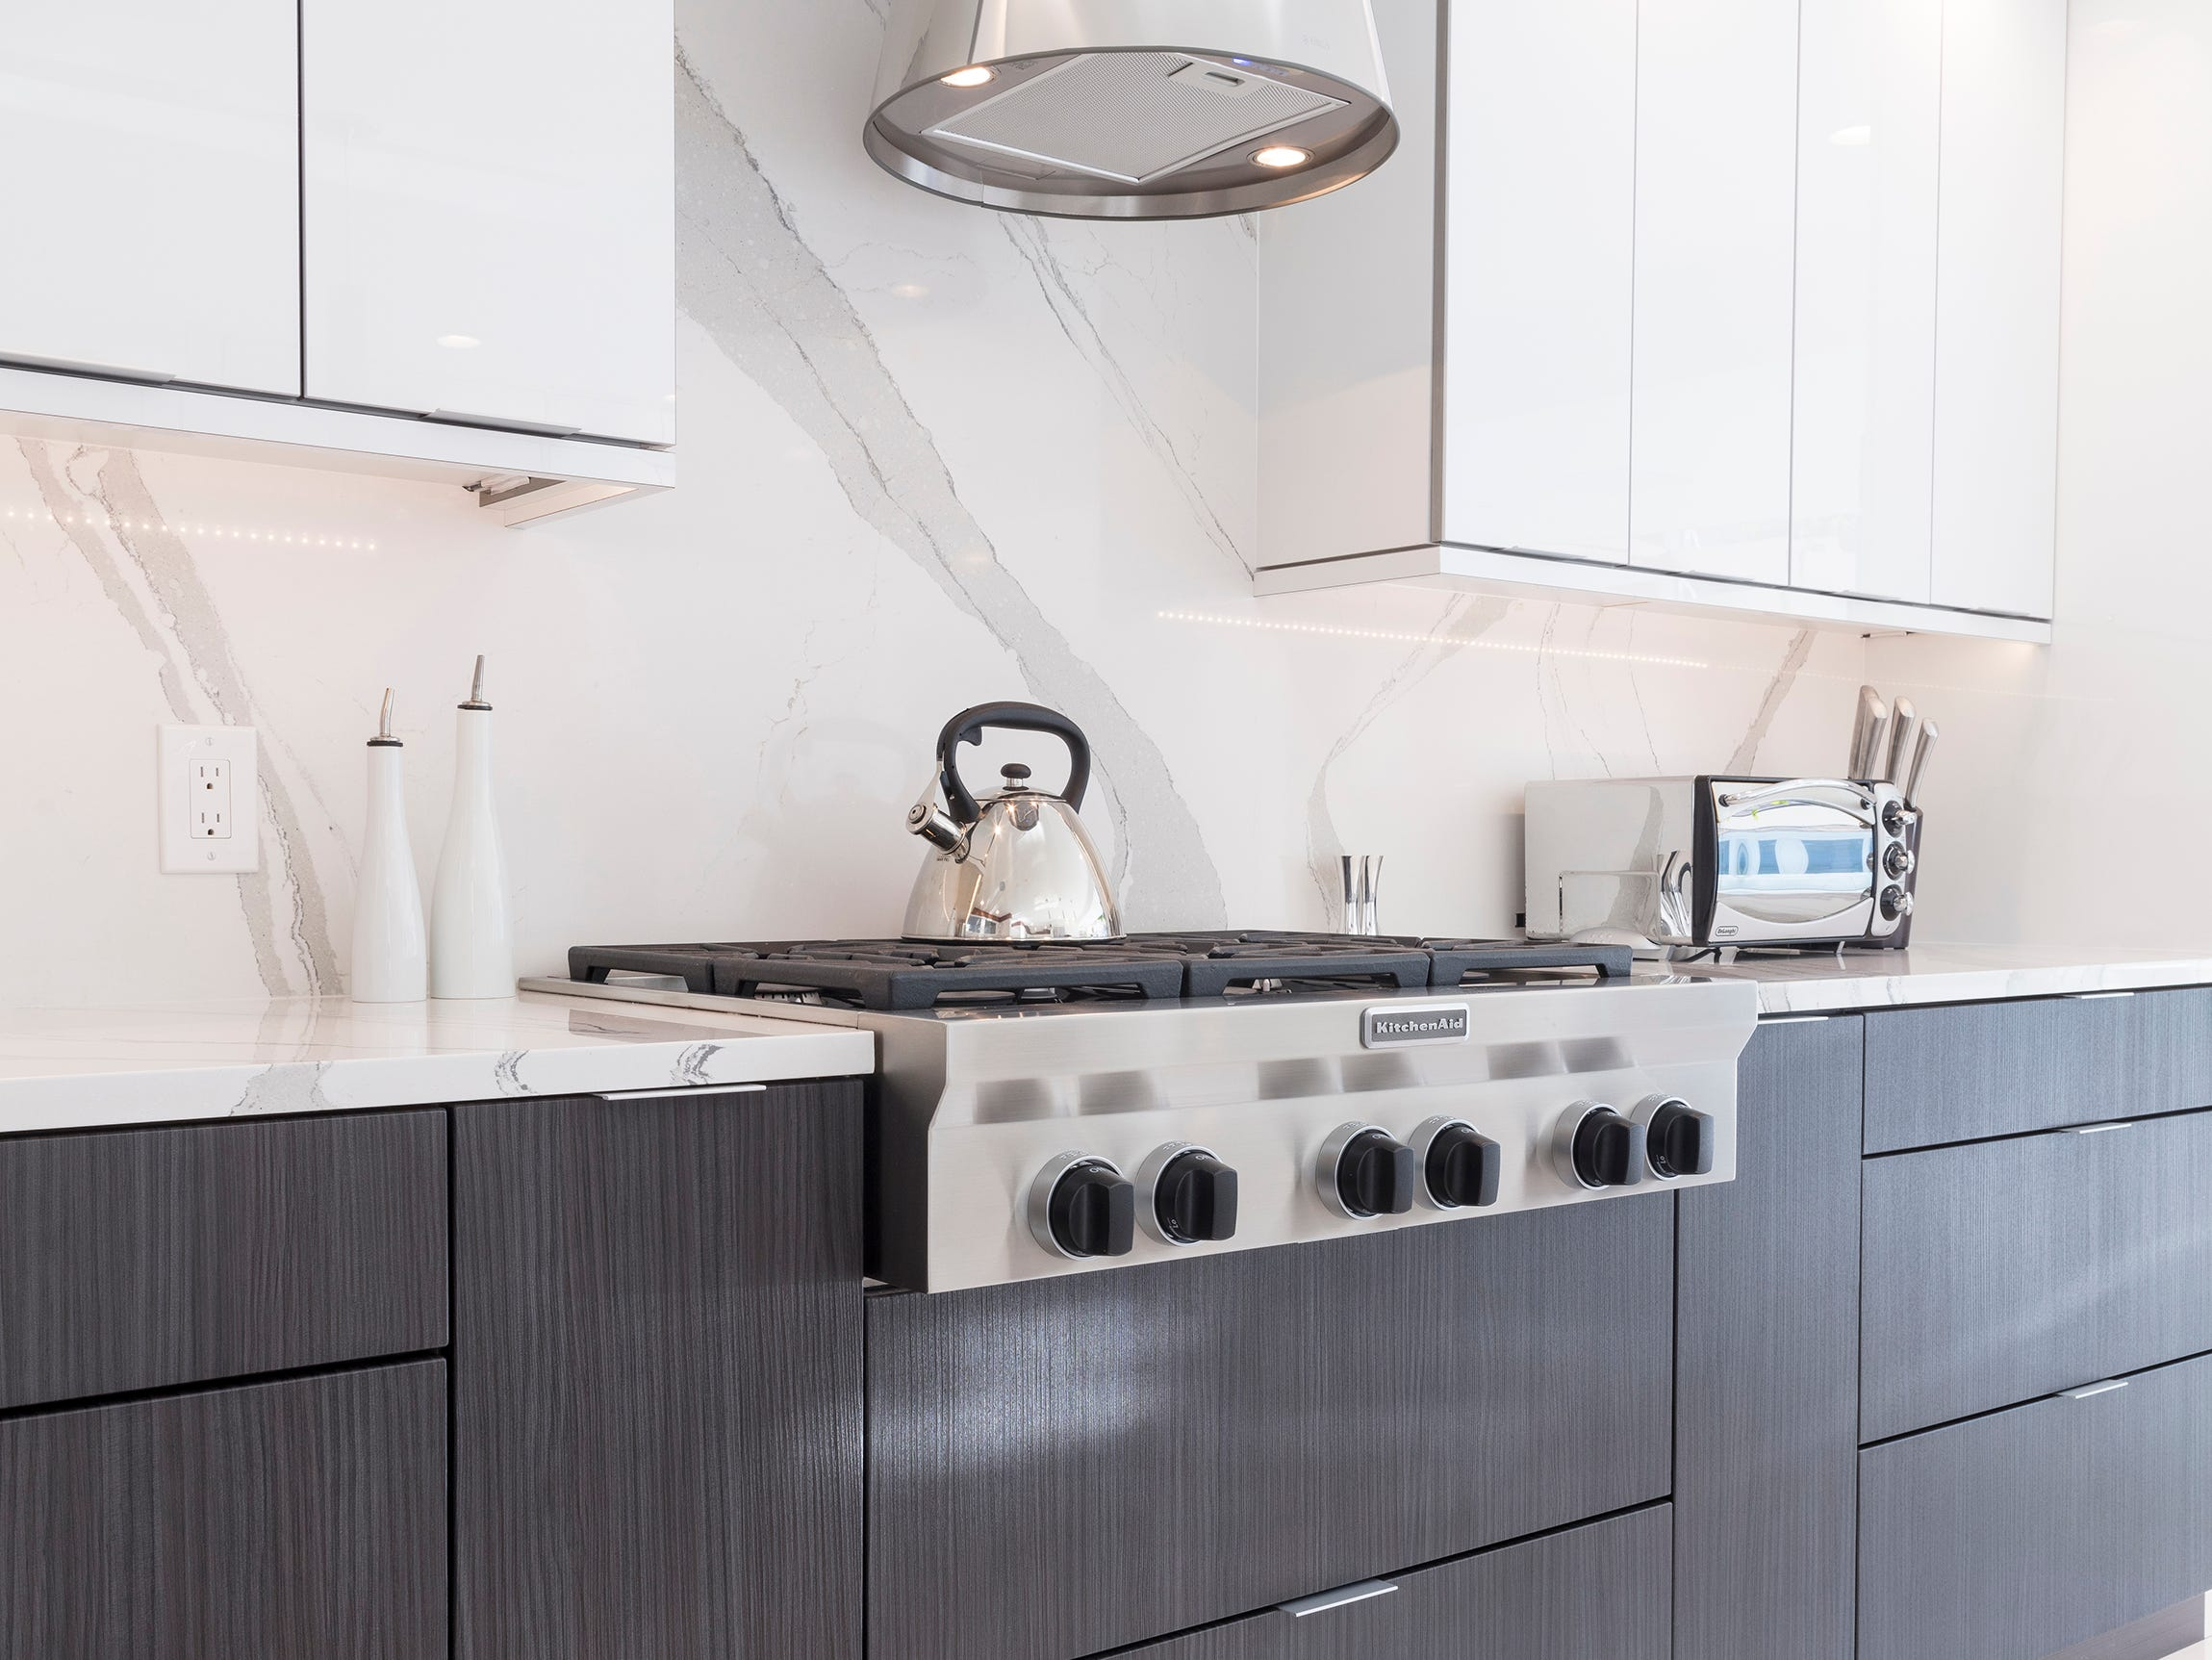 The slab backsplash matches the quartz island.